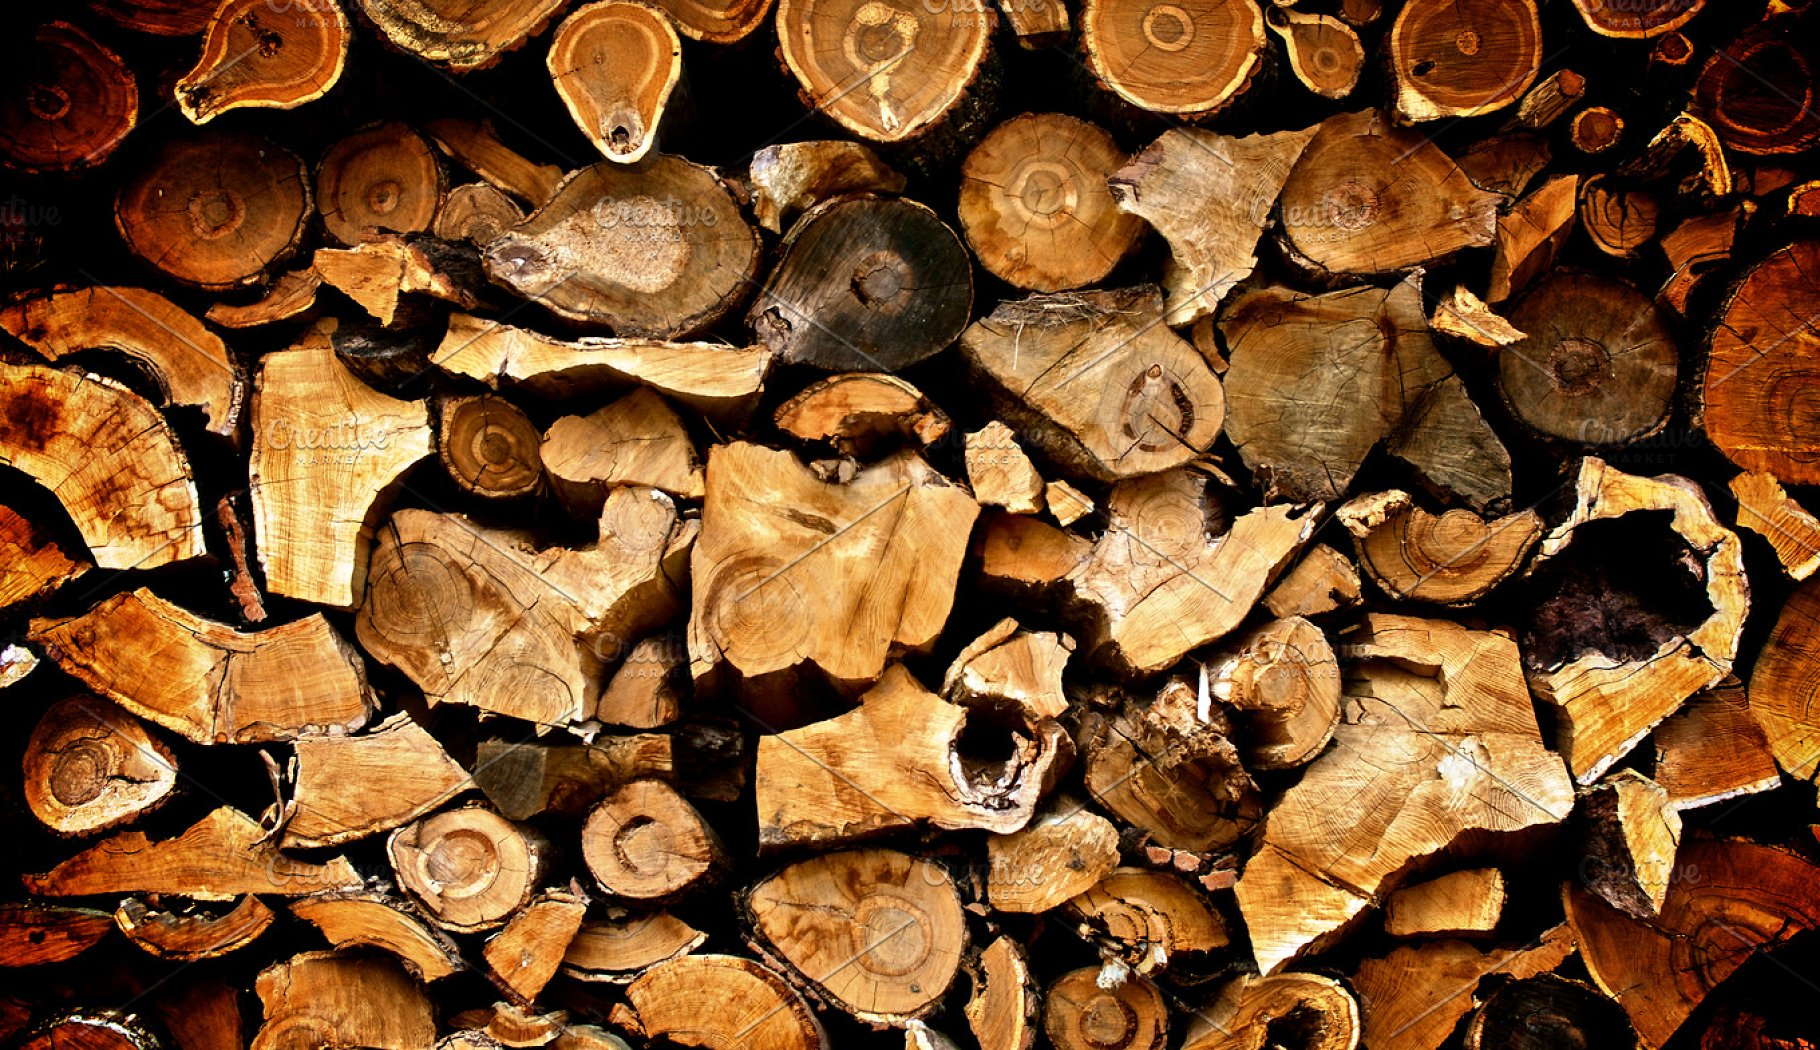 Background of Firewood High Quality Abstract Stock Photos 1820x1050